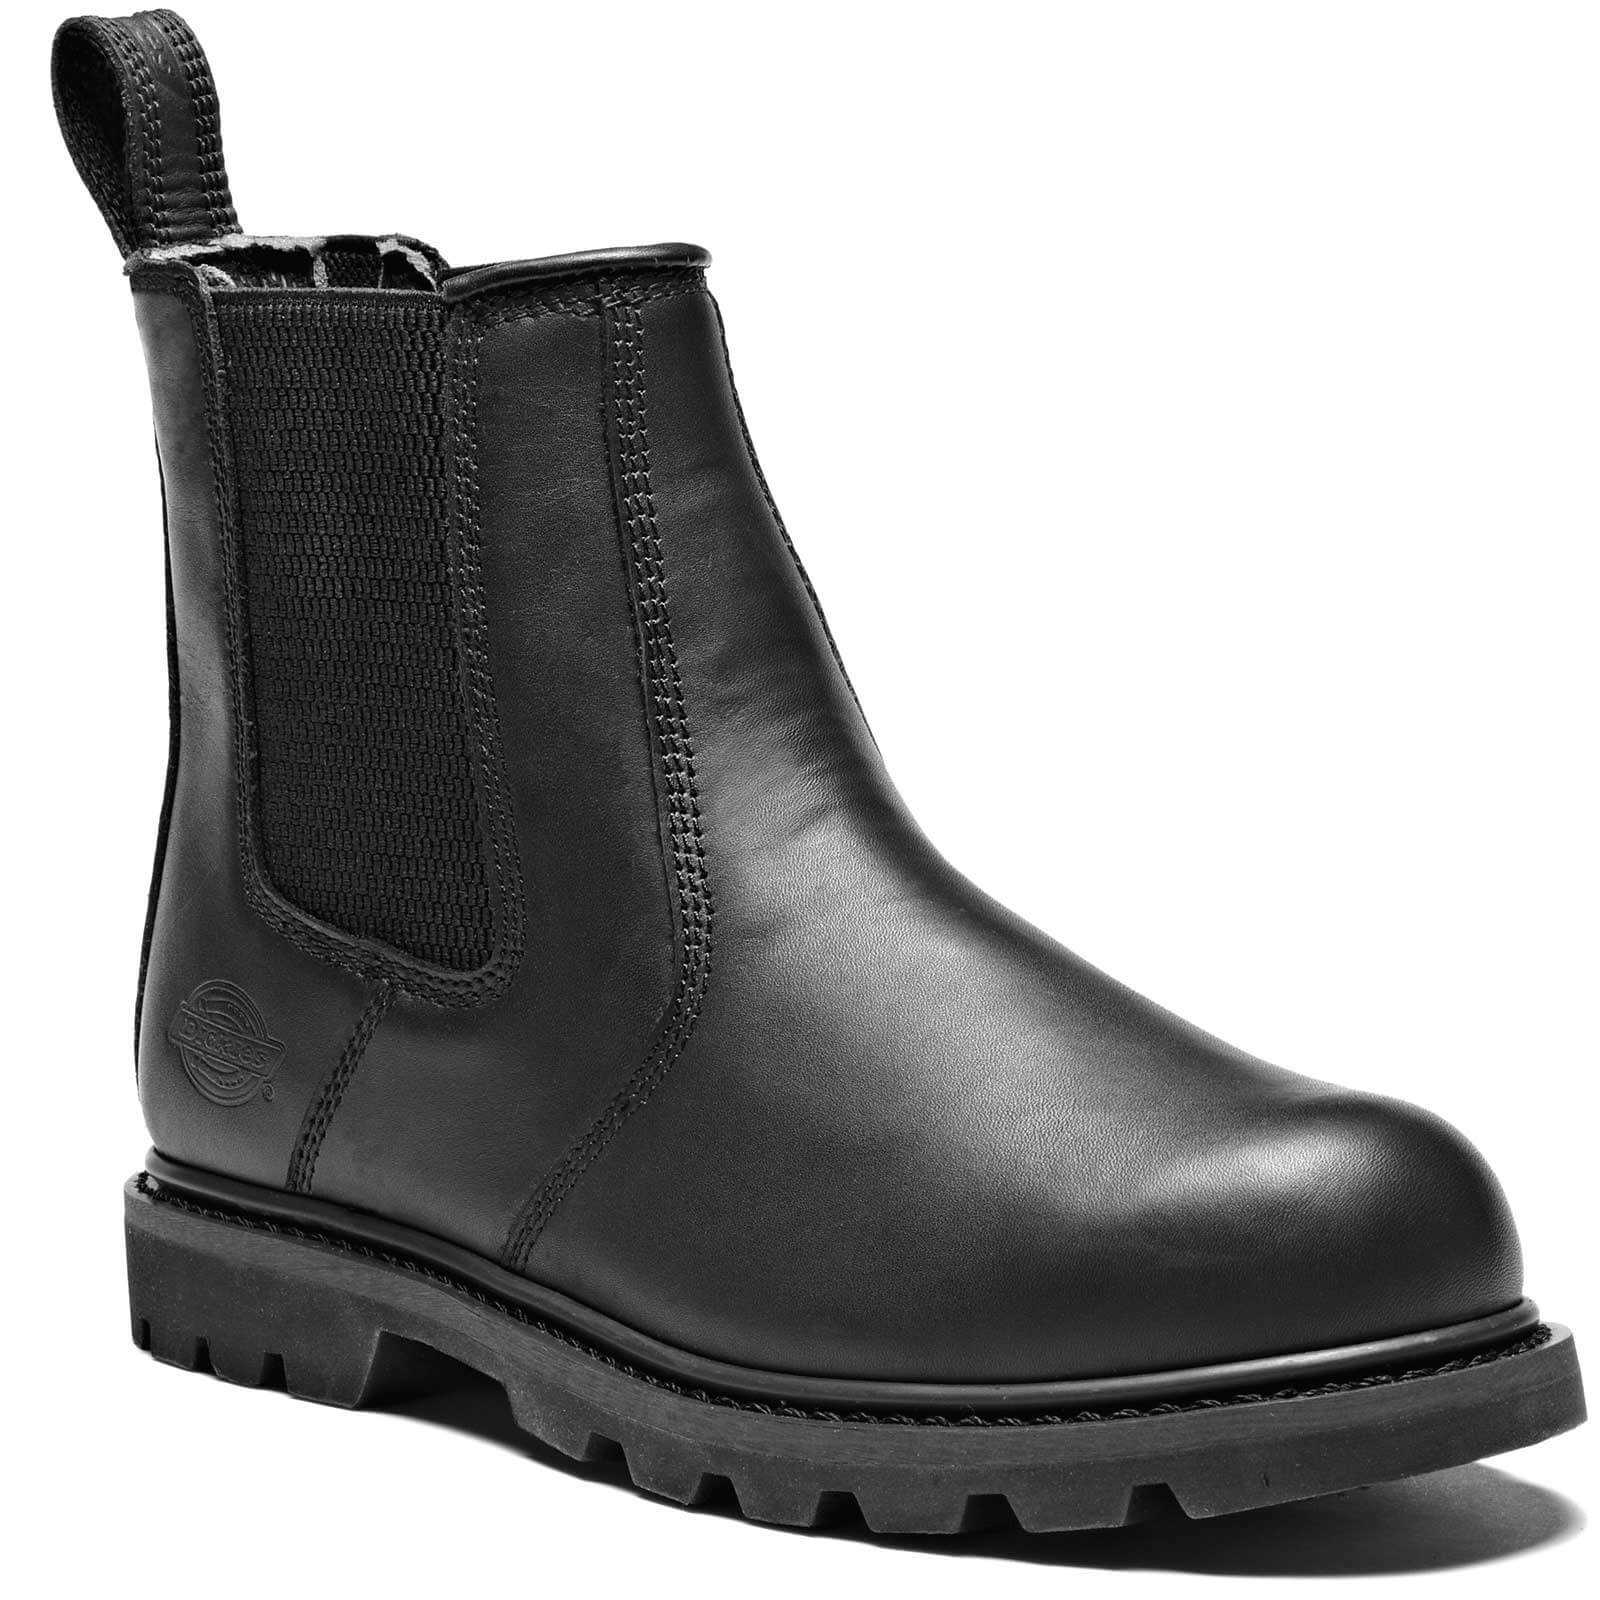 Dickies Mens Fife II Dealer Safety Boots Black Size 5.5